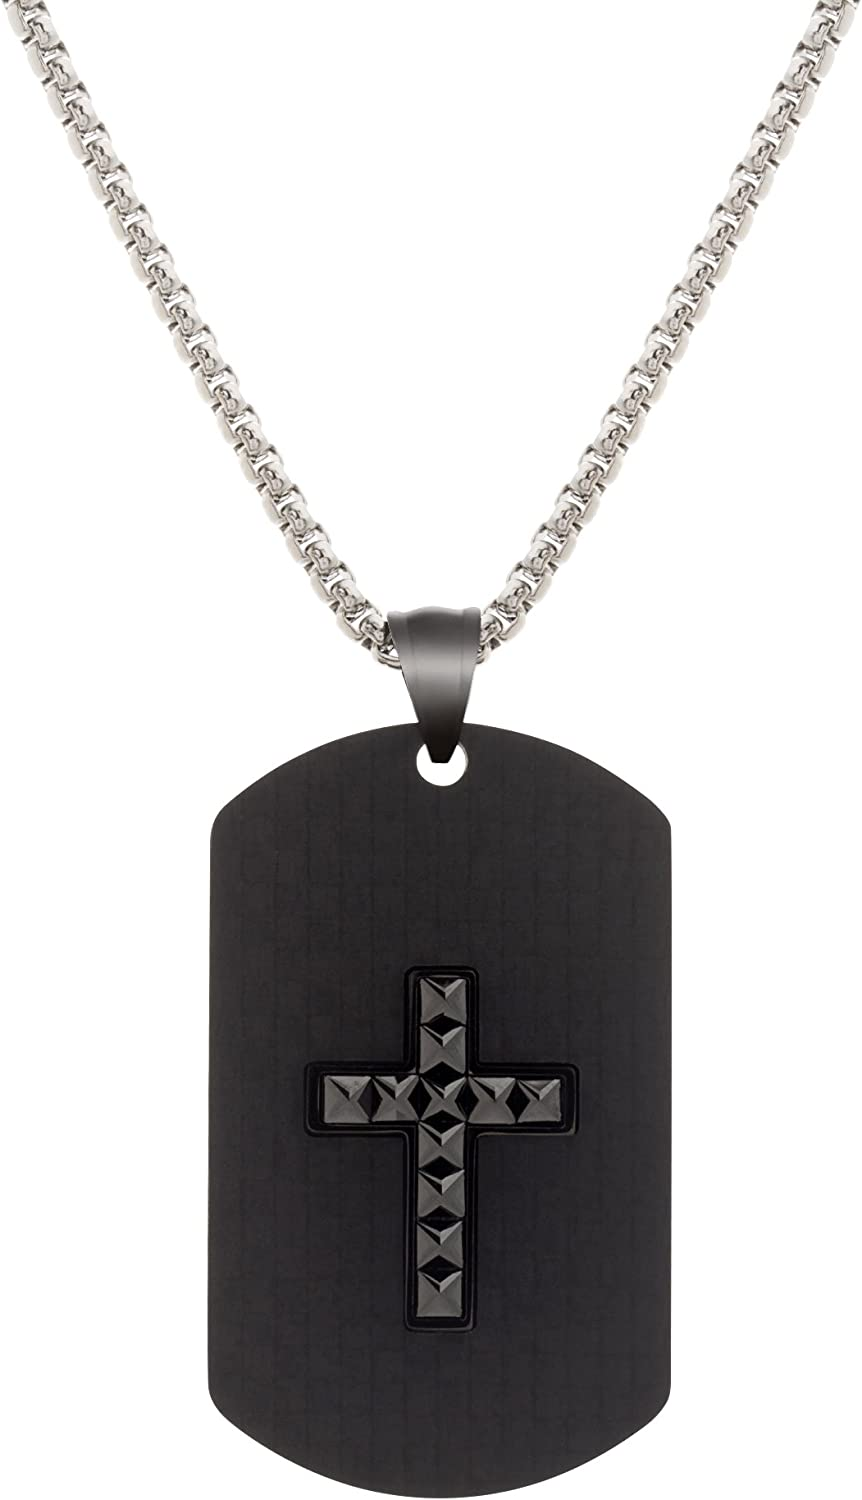 Stainless Steel 24 Mens Carbon Fiber Cross with Dog Tag Pendant Necklace